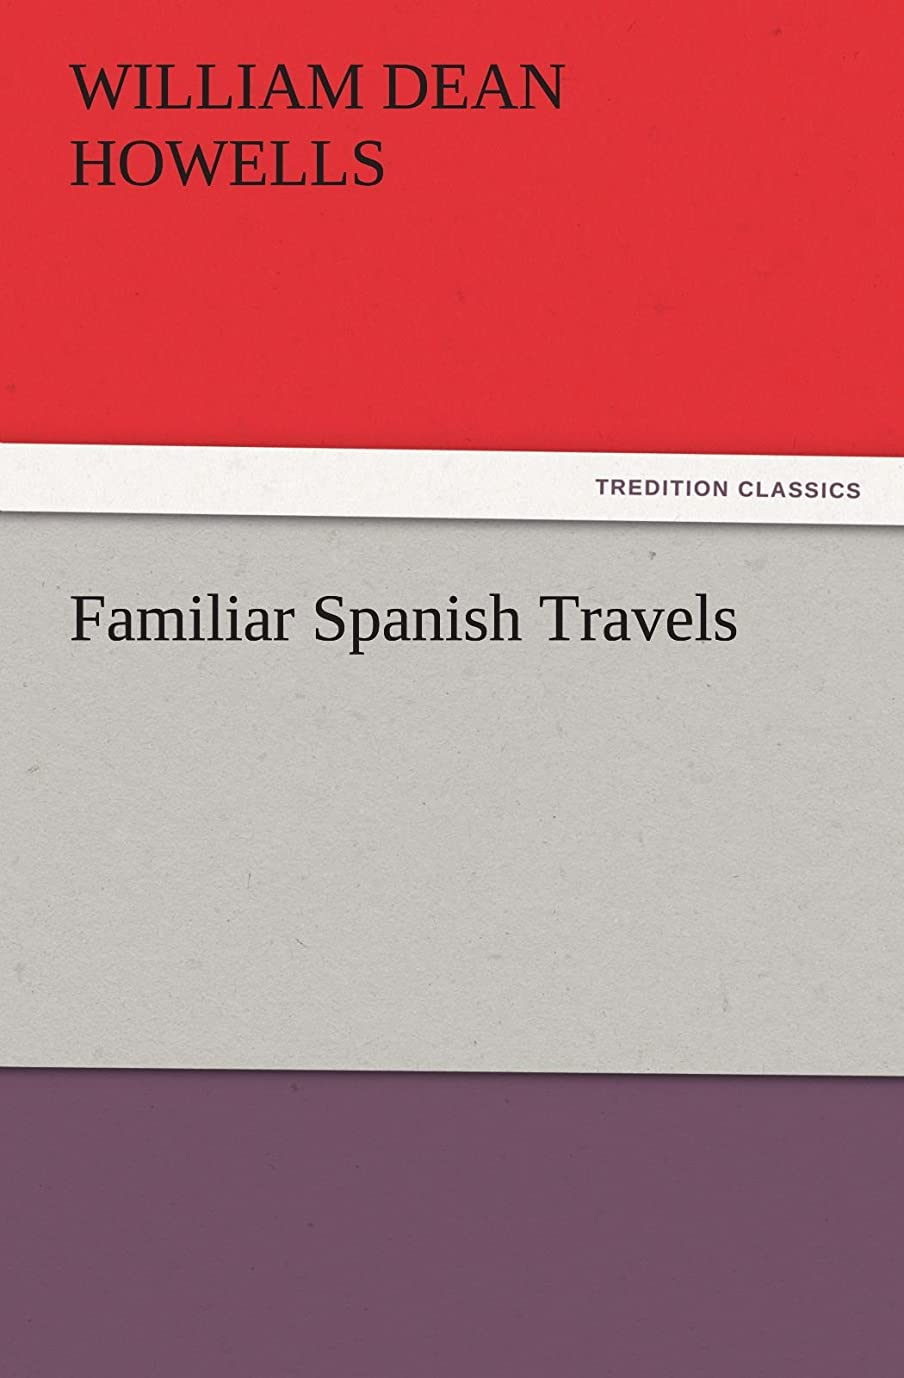 犯すこどもの宮殿過半数Familiar Spanish Travels (TREDITION CLASSICS)